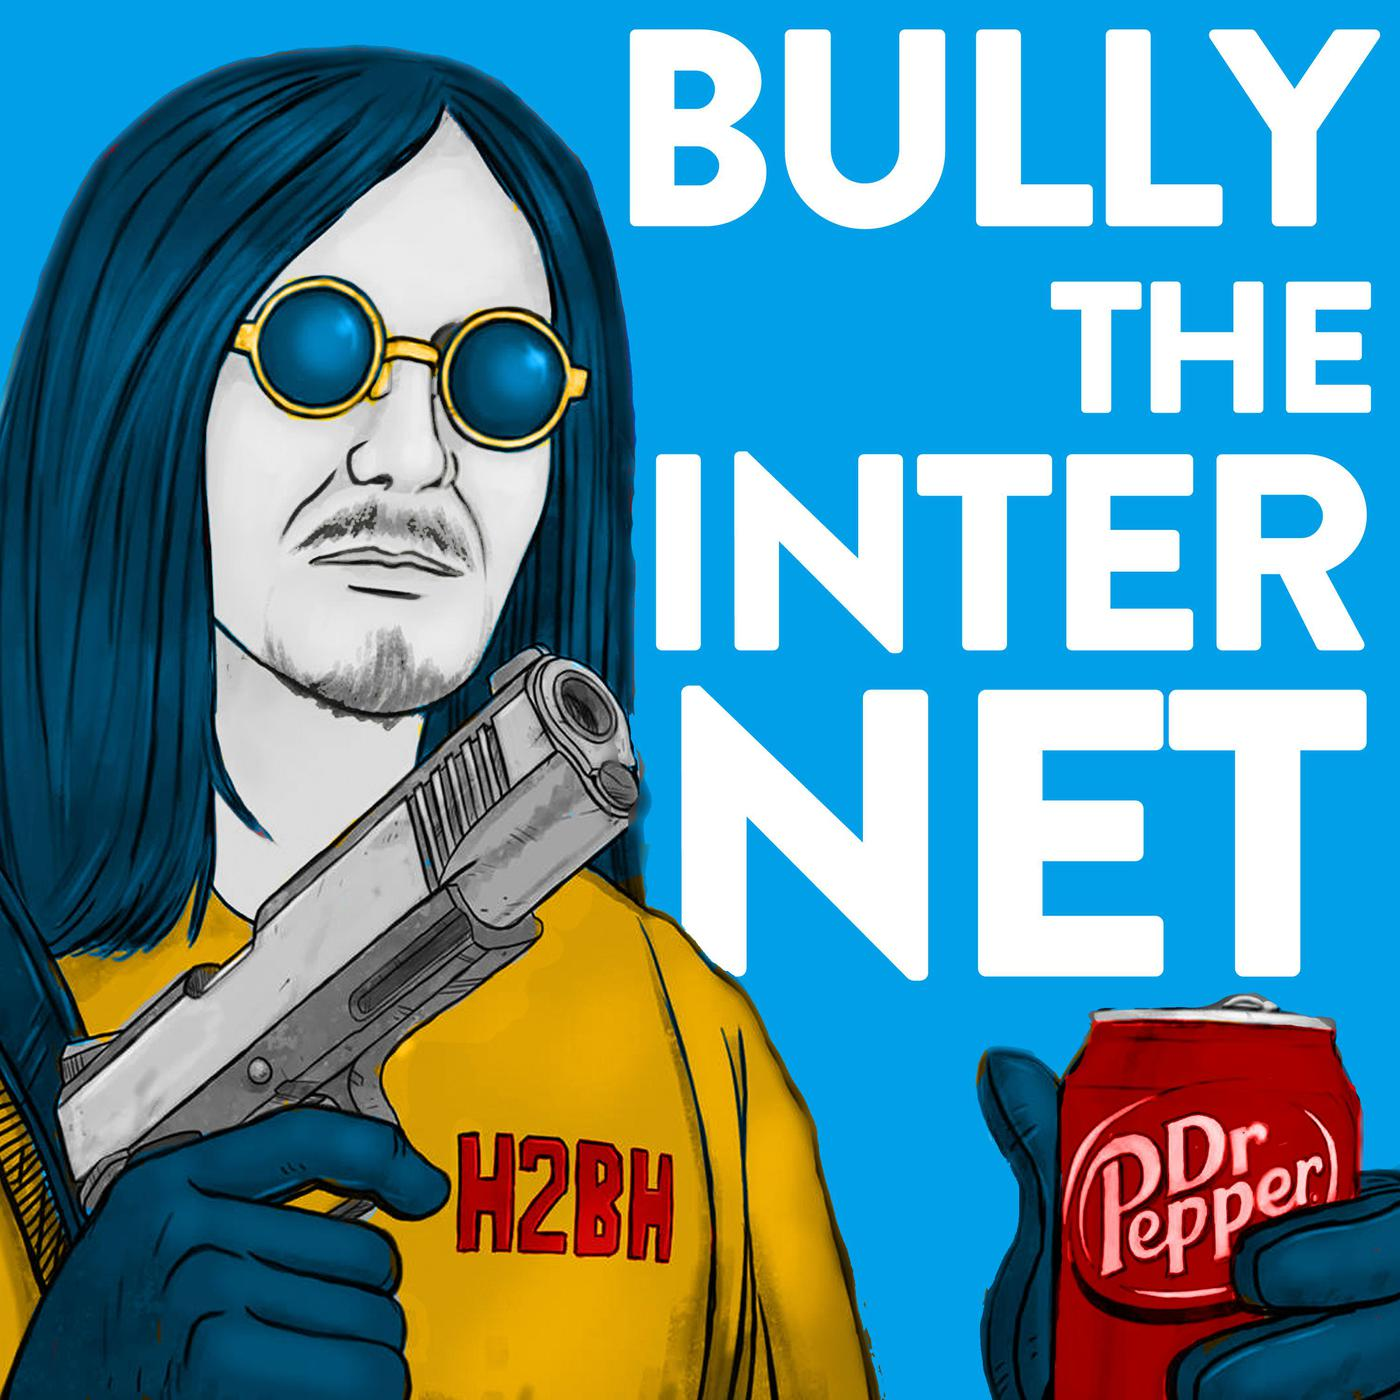 TARGETED INDIVIDUALS (ʏᴇs ʏᴏᴜ ) - BULLY THE INTERNET (podcast